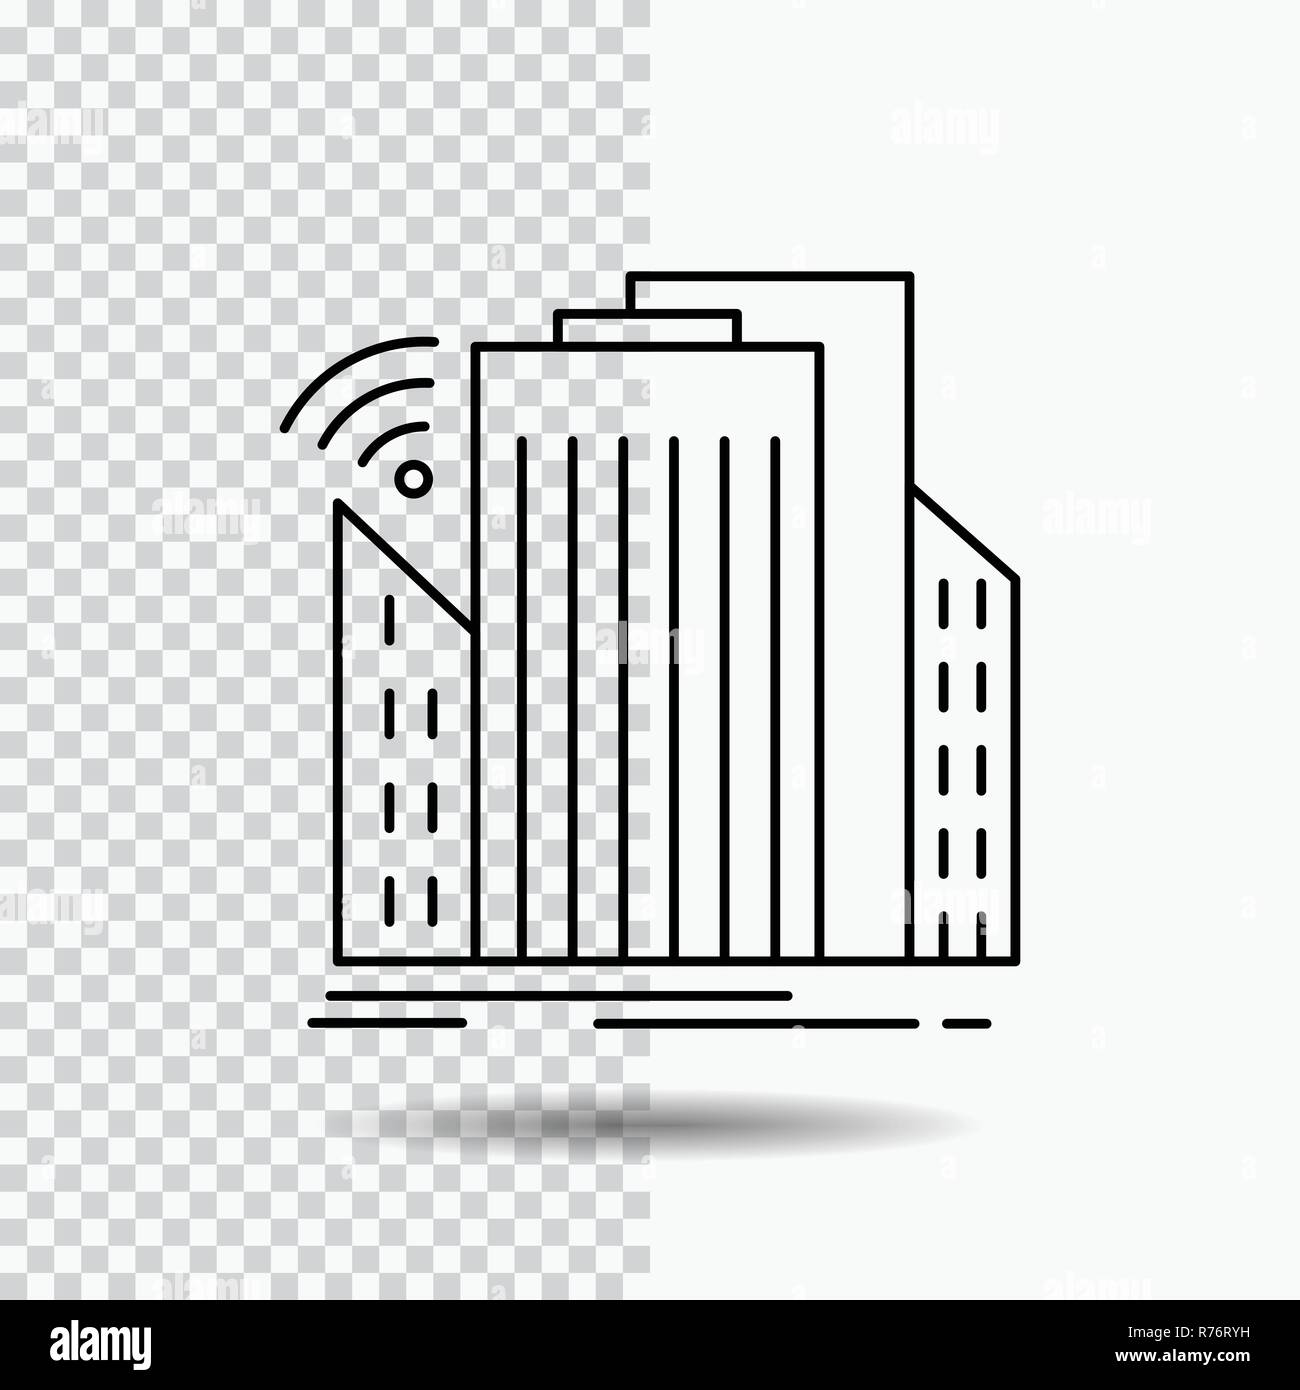 Buildings, city, sensor, smart, urban Line Icon on Transparent Background. Black Icon Vector Illustration - Stock Vector